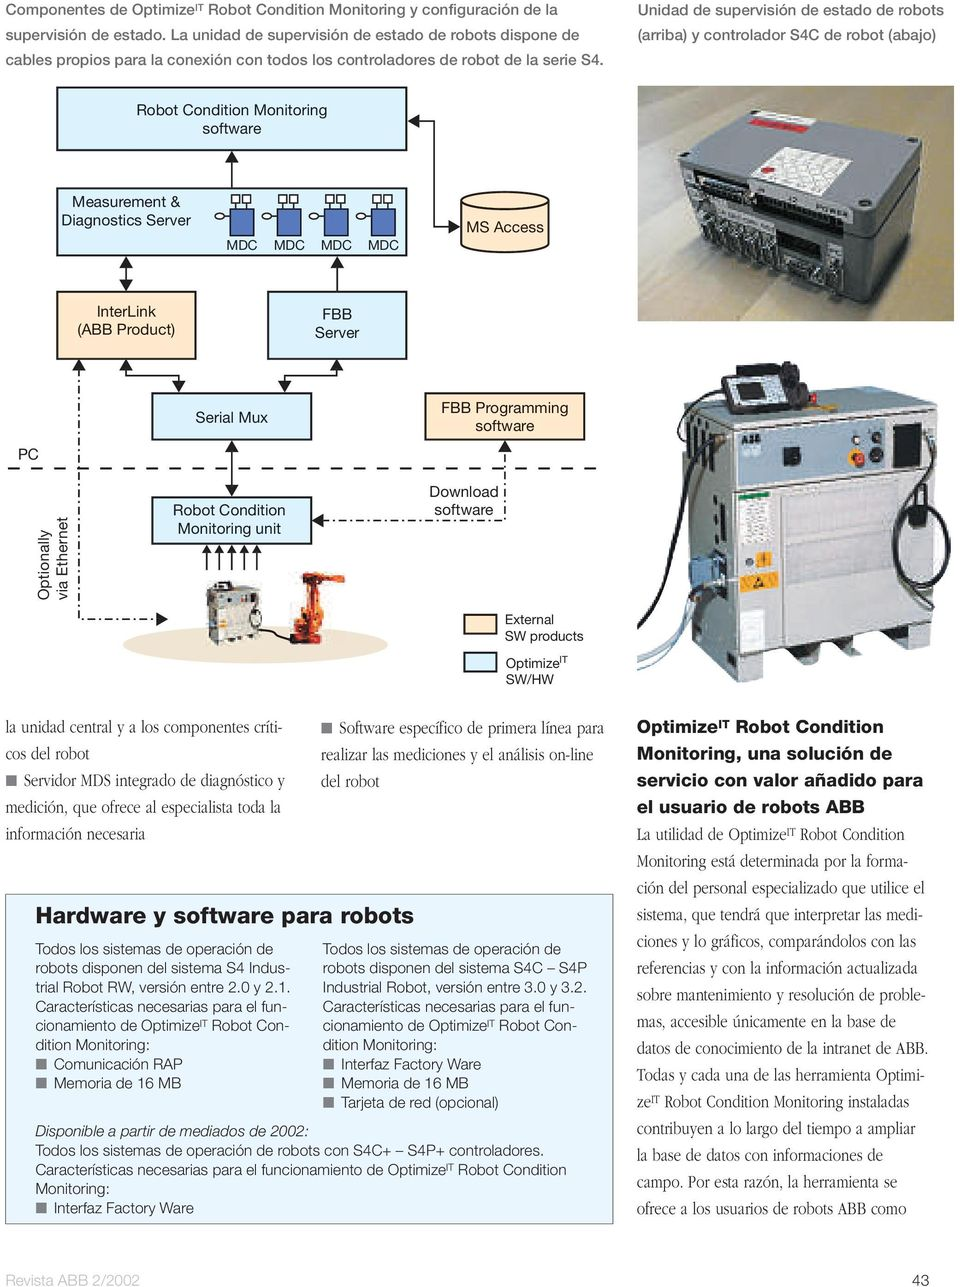 Unidad de supervisión de estado de robots (arriba) y controlador S4C de robot (abajo) Robot Condition Monitoring software Measurement & Diagnostics Server MDC MDC MDC MDC MS Access InterLink (ABB